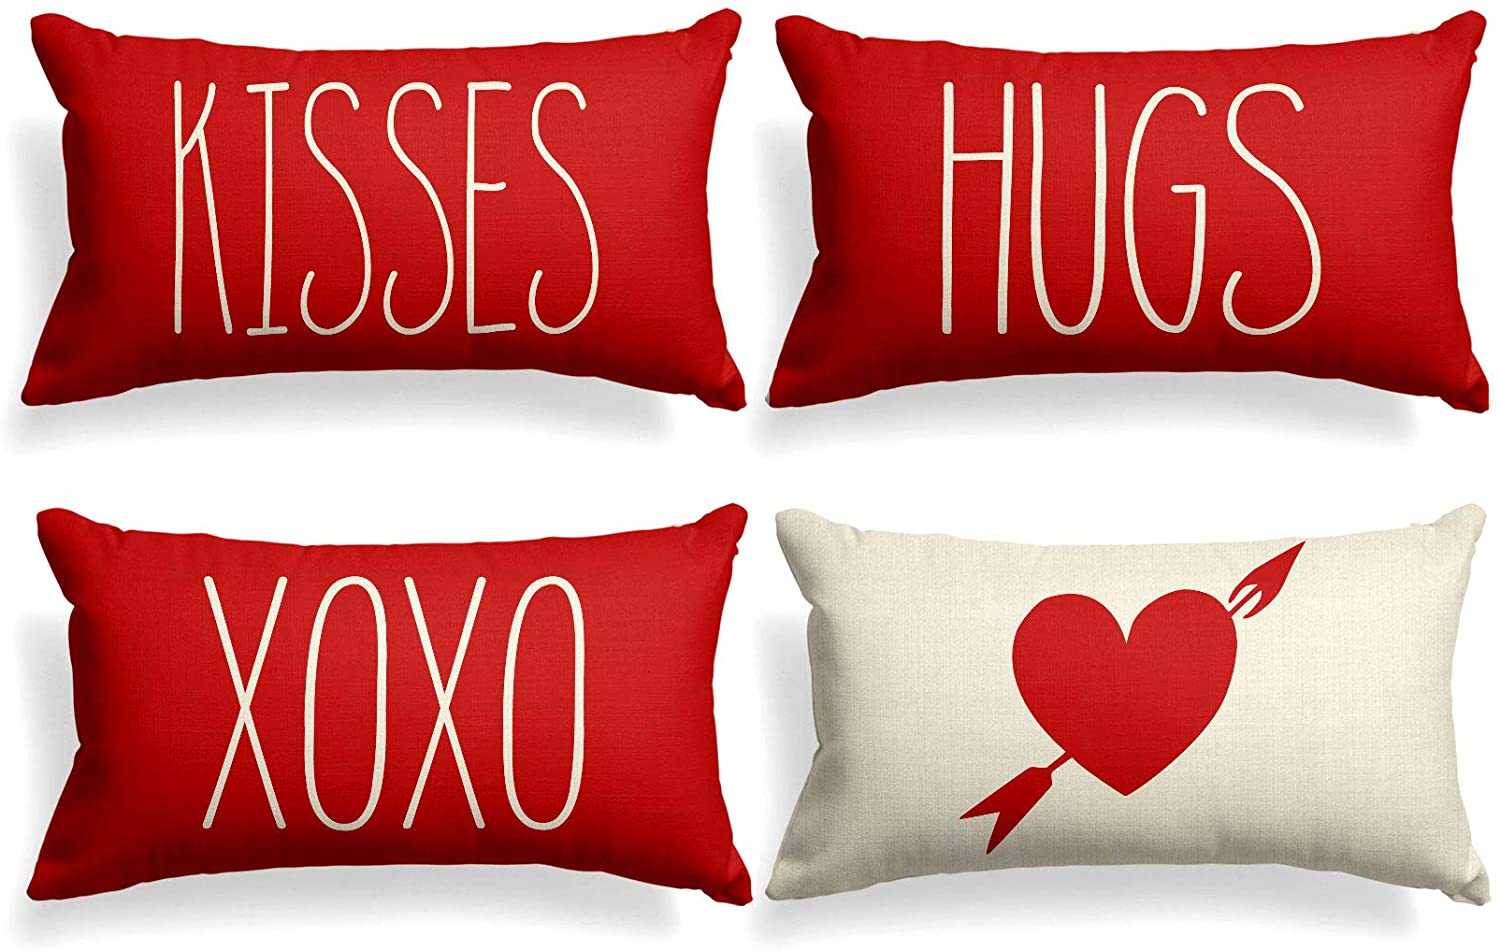 Beyond hugs and kisses this Valentines